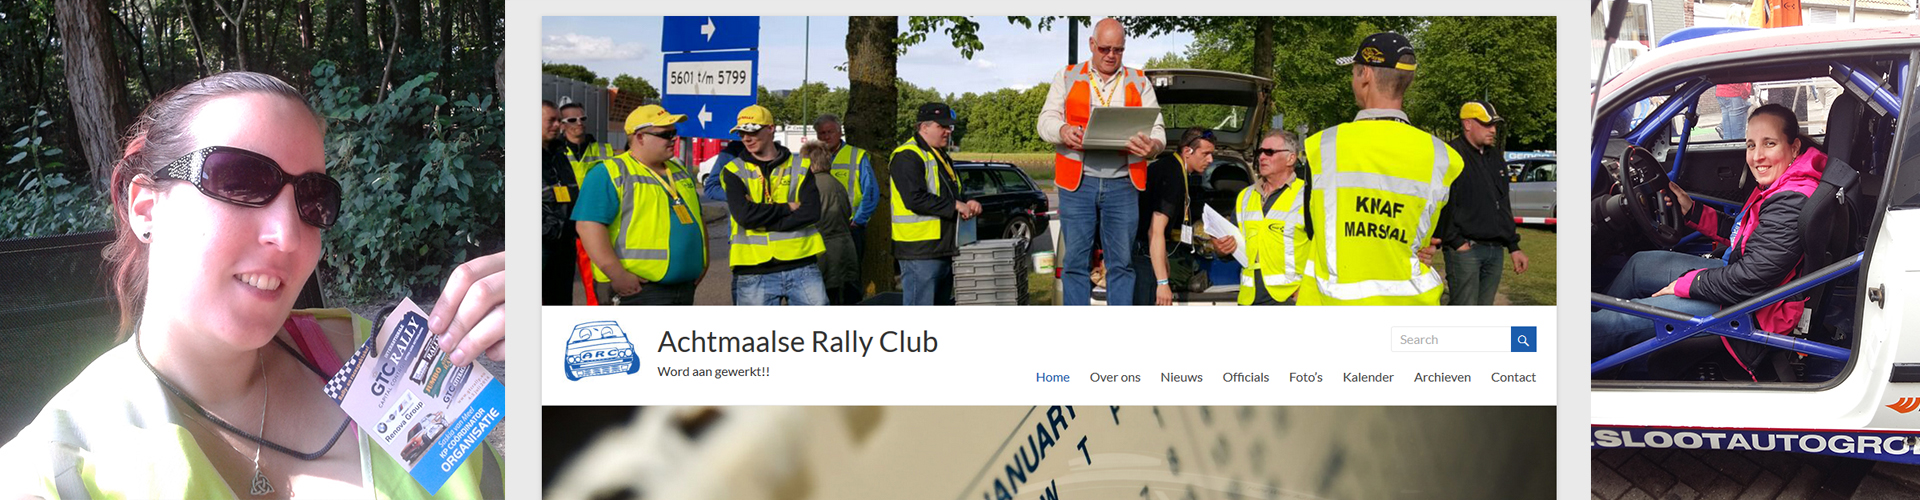 Achtmaalse Rally Club